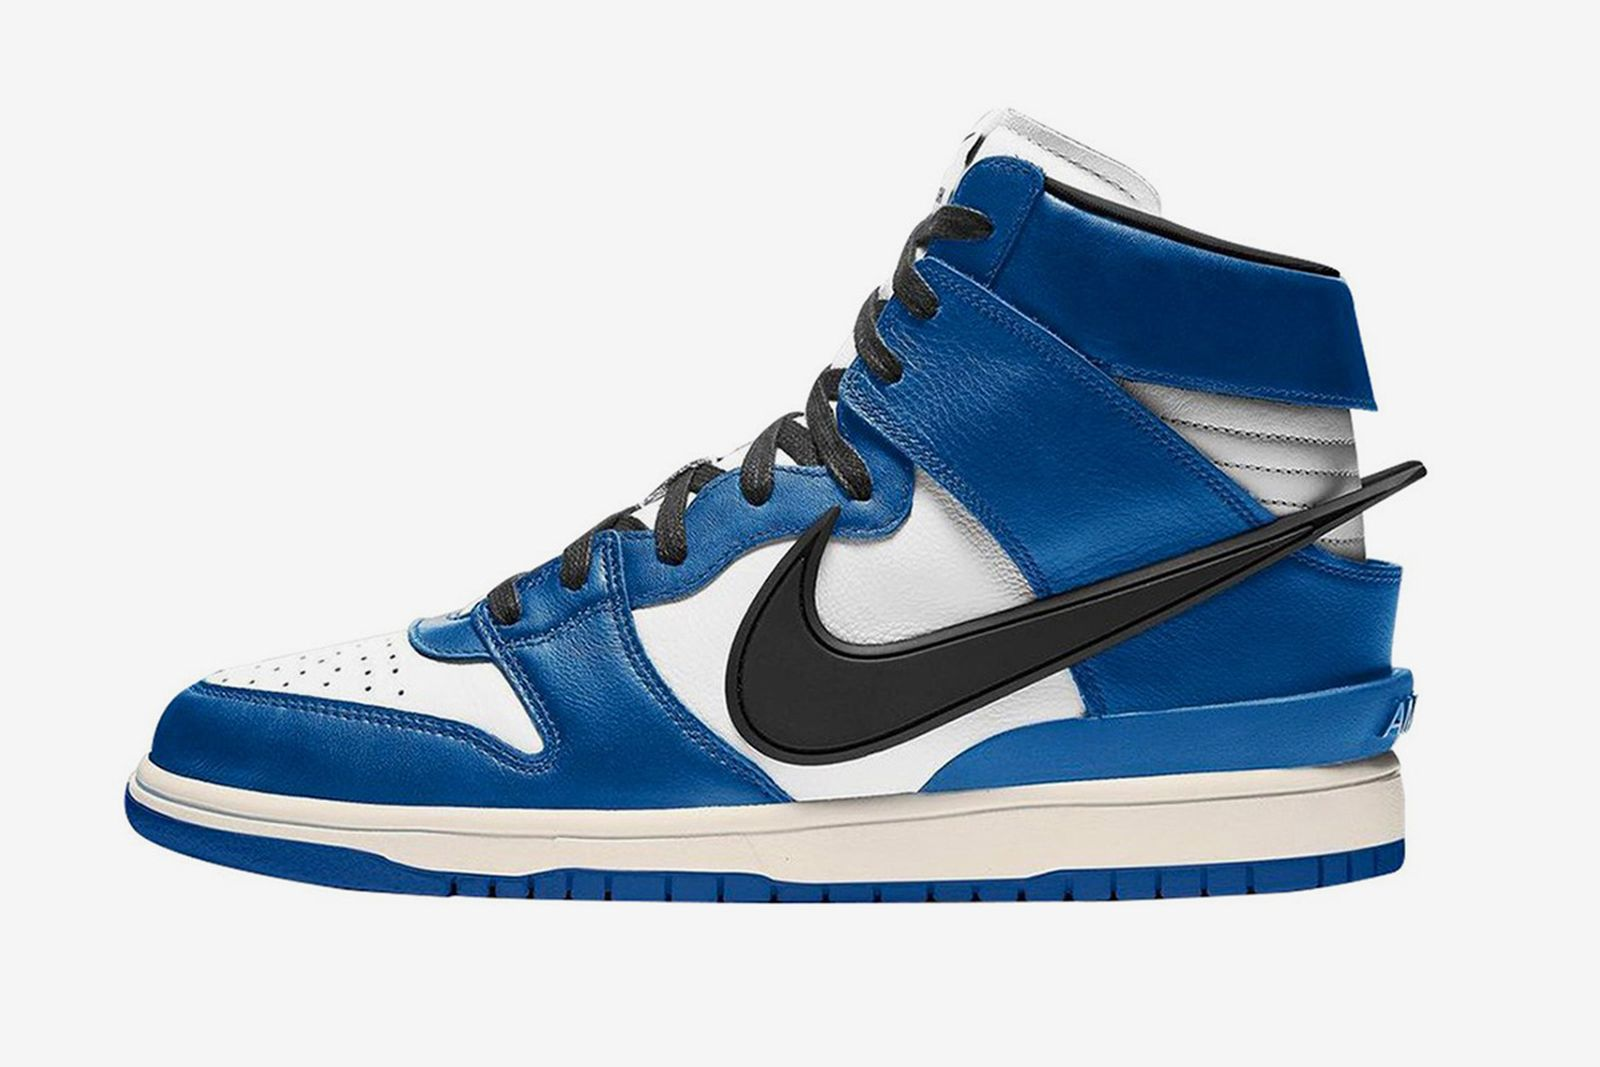 ambush-nike-dunk-high-royal-blue-release-date-price-main